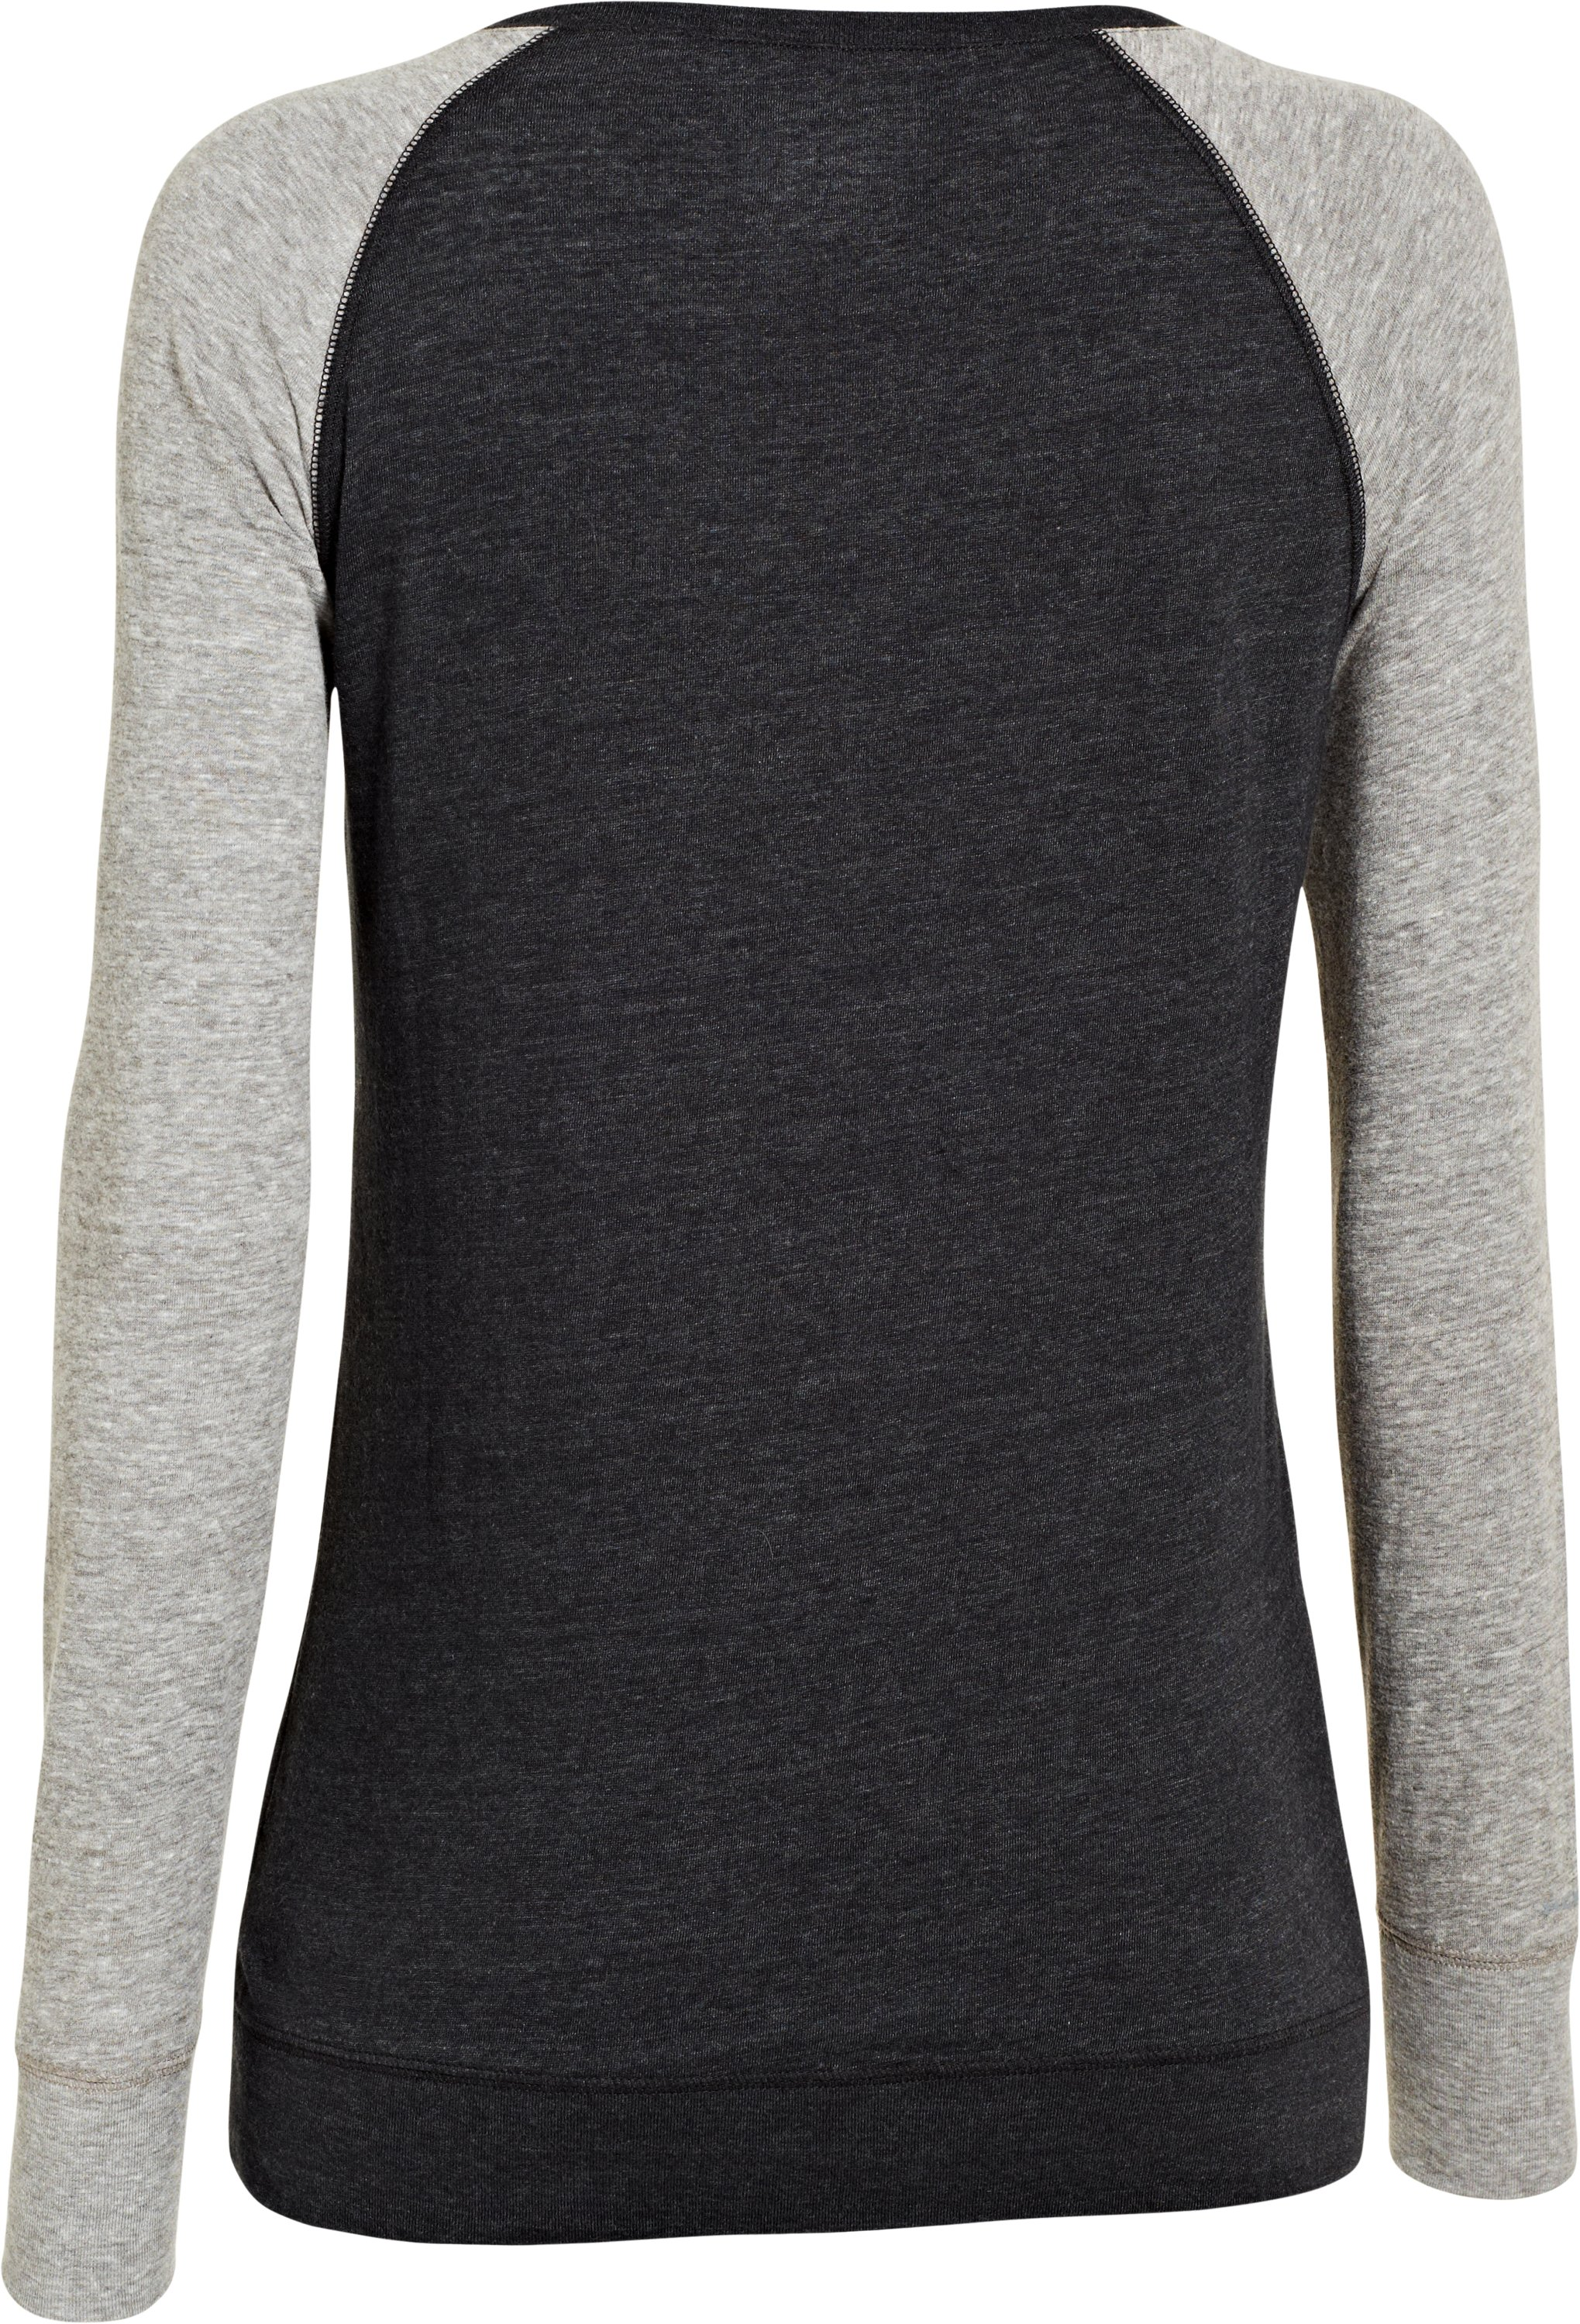 Women's UA Script Metallic Long Sleeve Raglan, Black , undefined